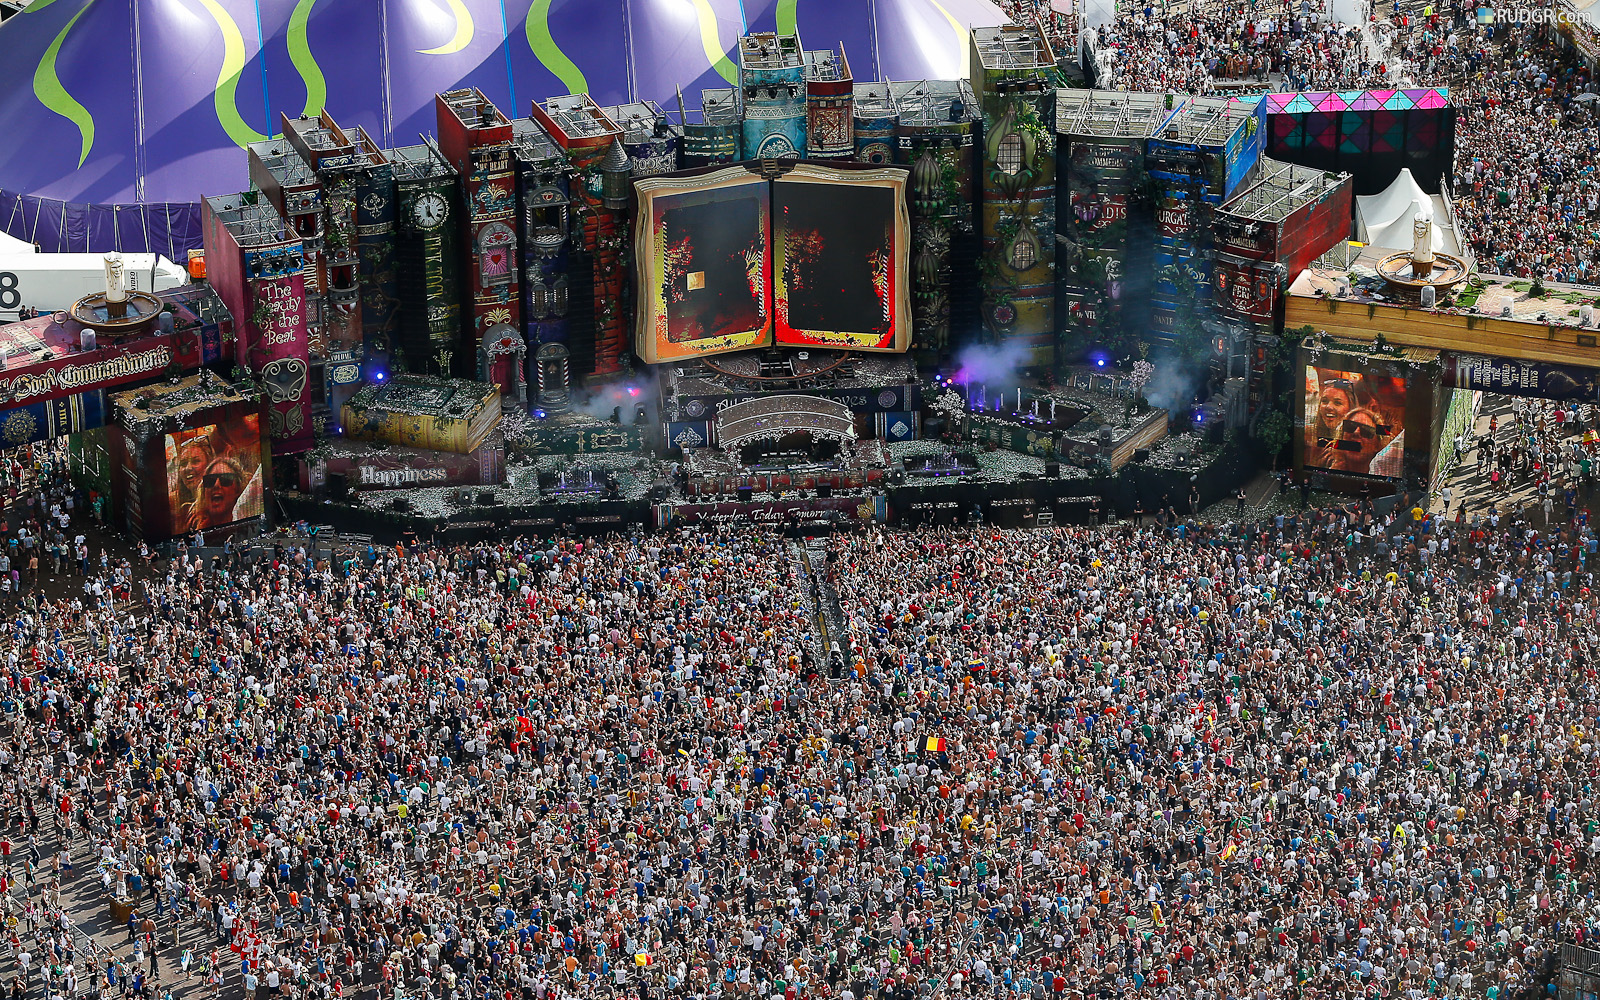 tomorrowland-2012-hd-wallpaper-carpet-of-people